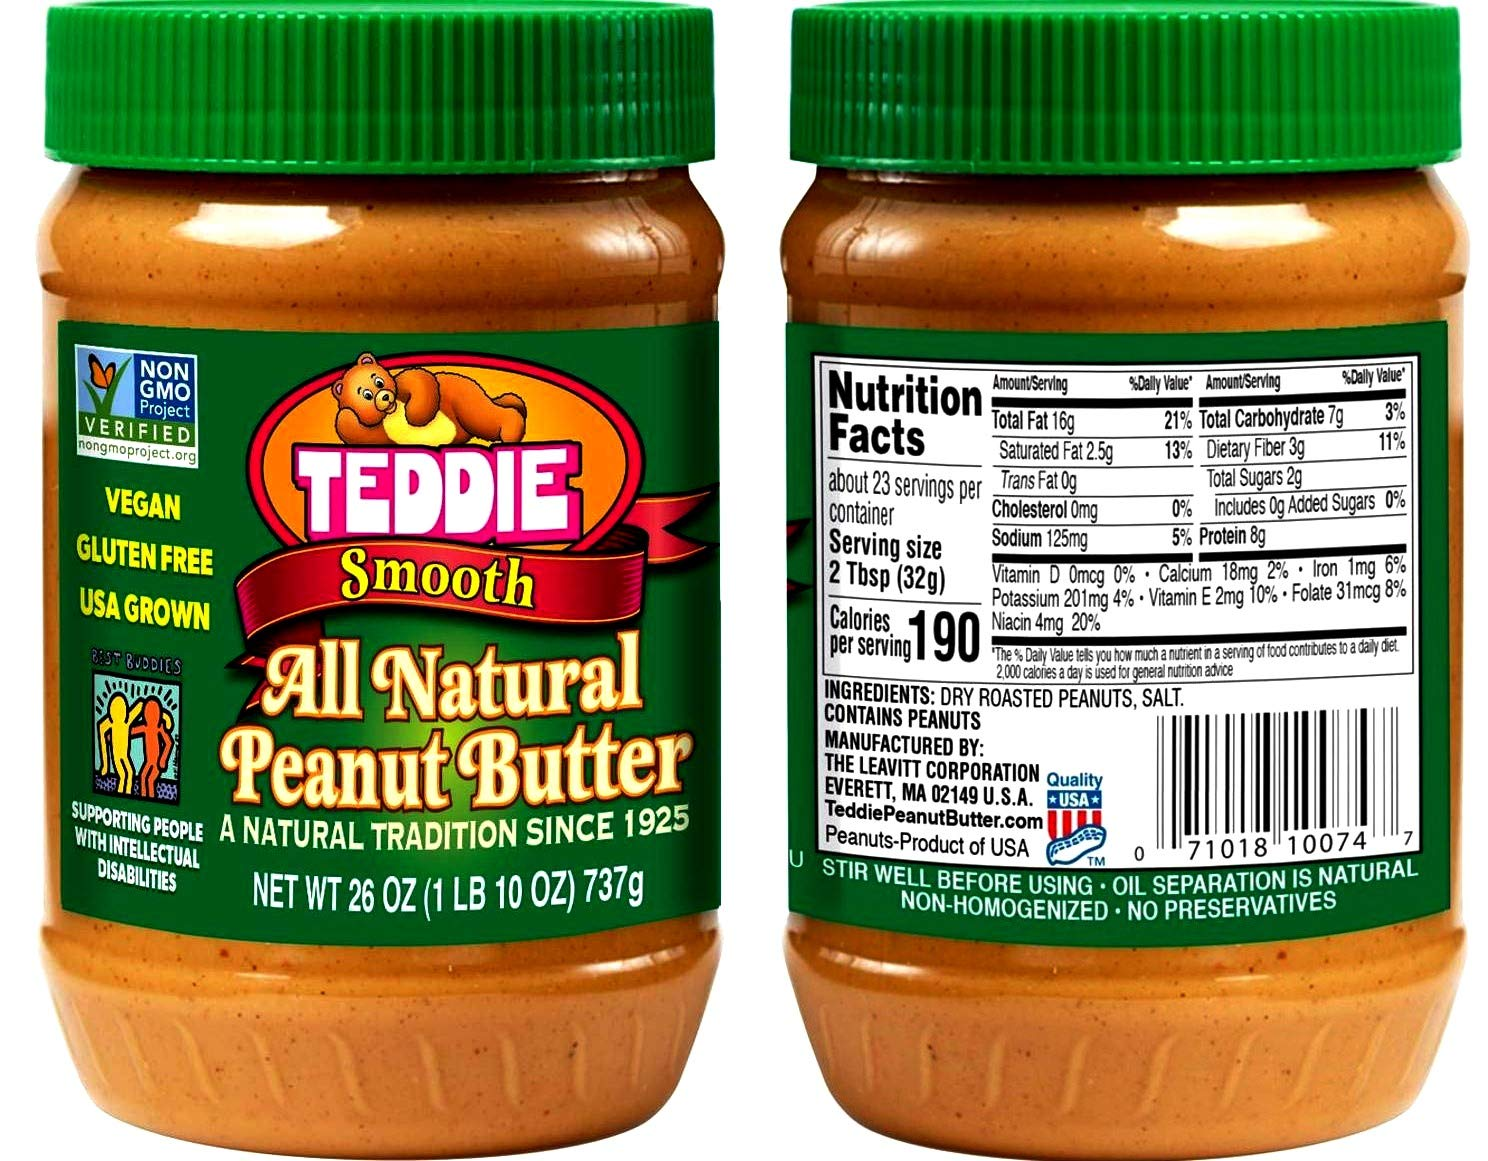 Dedication Delicious Peanut Butter Max 70% OFF Teddie Edition Natural All